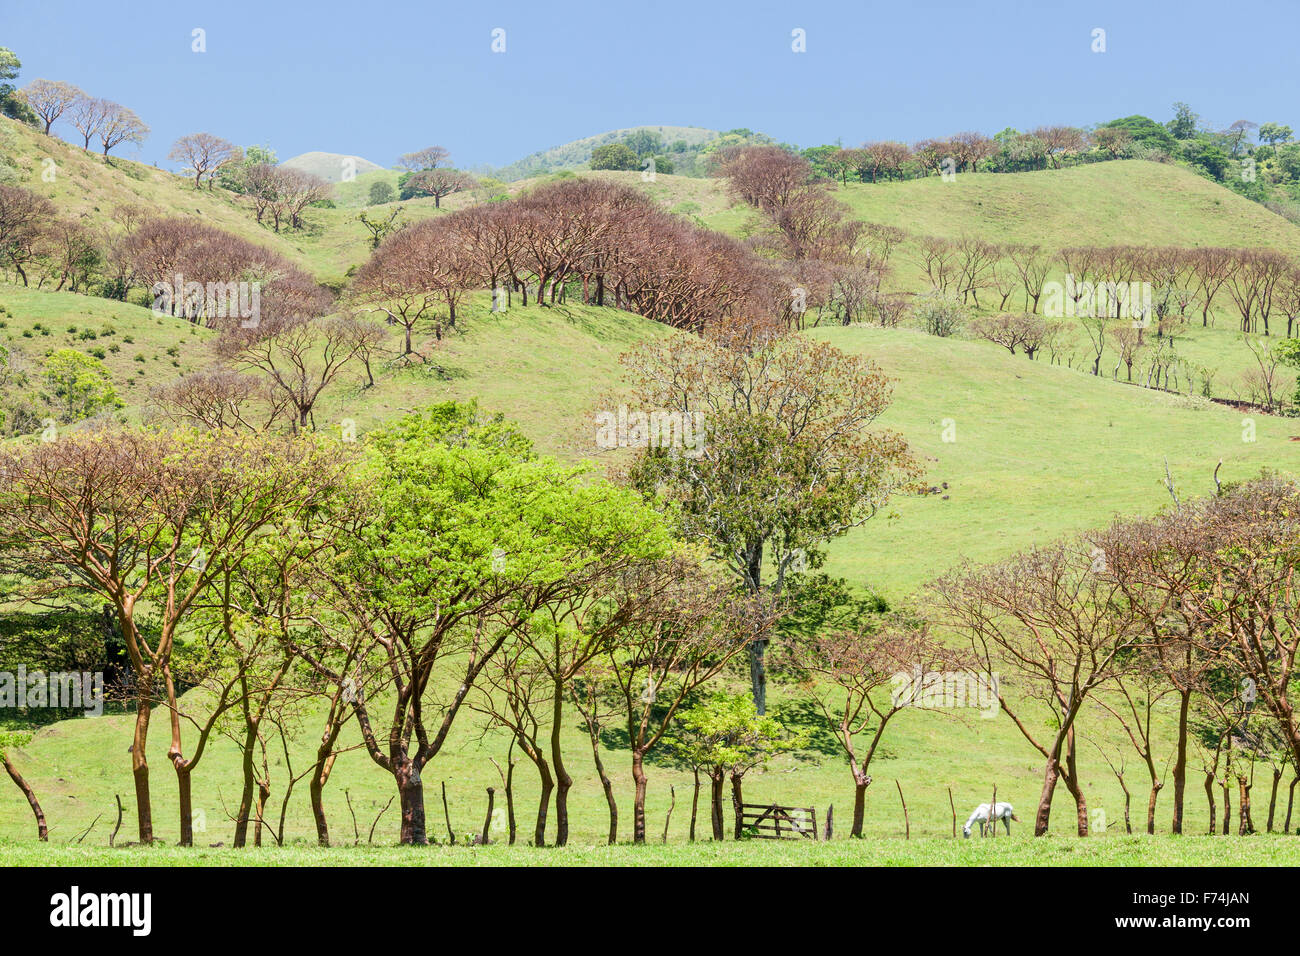 Gumbo limbo trees form the fence lines of meadows near Lake Catemaco, Veracruz, Mexico. - Stock Image